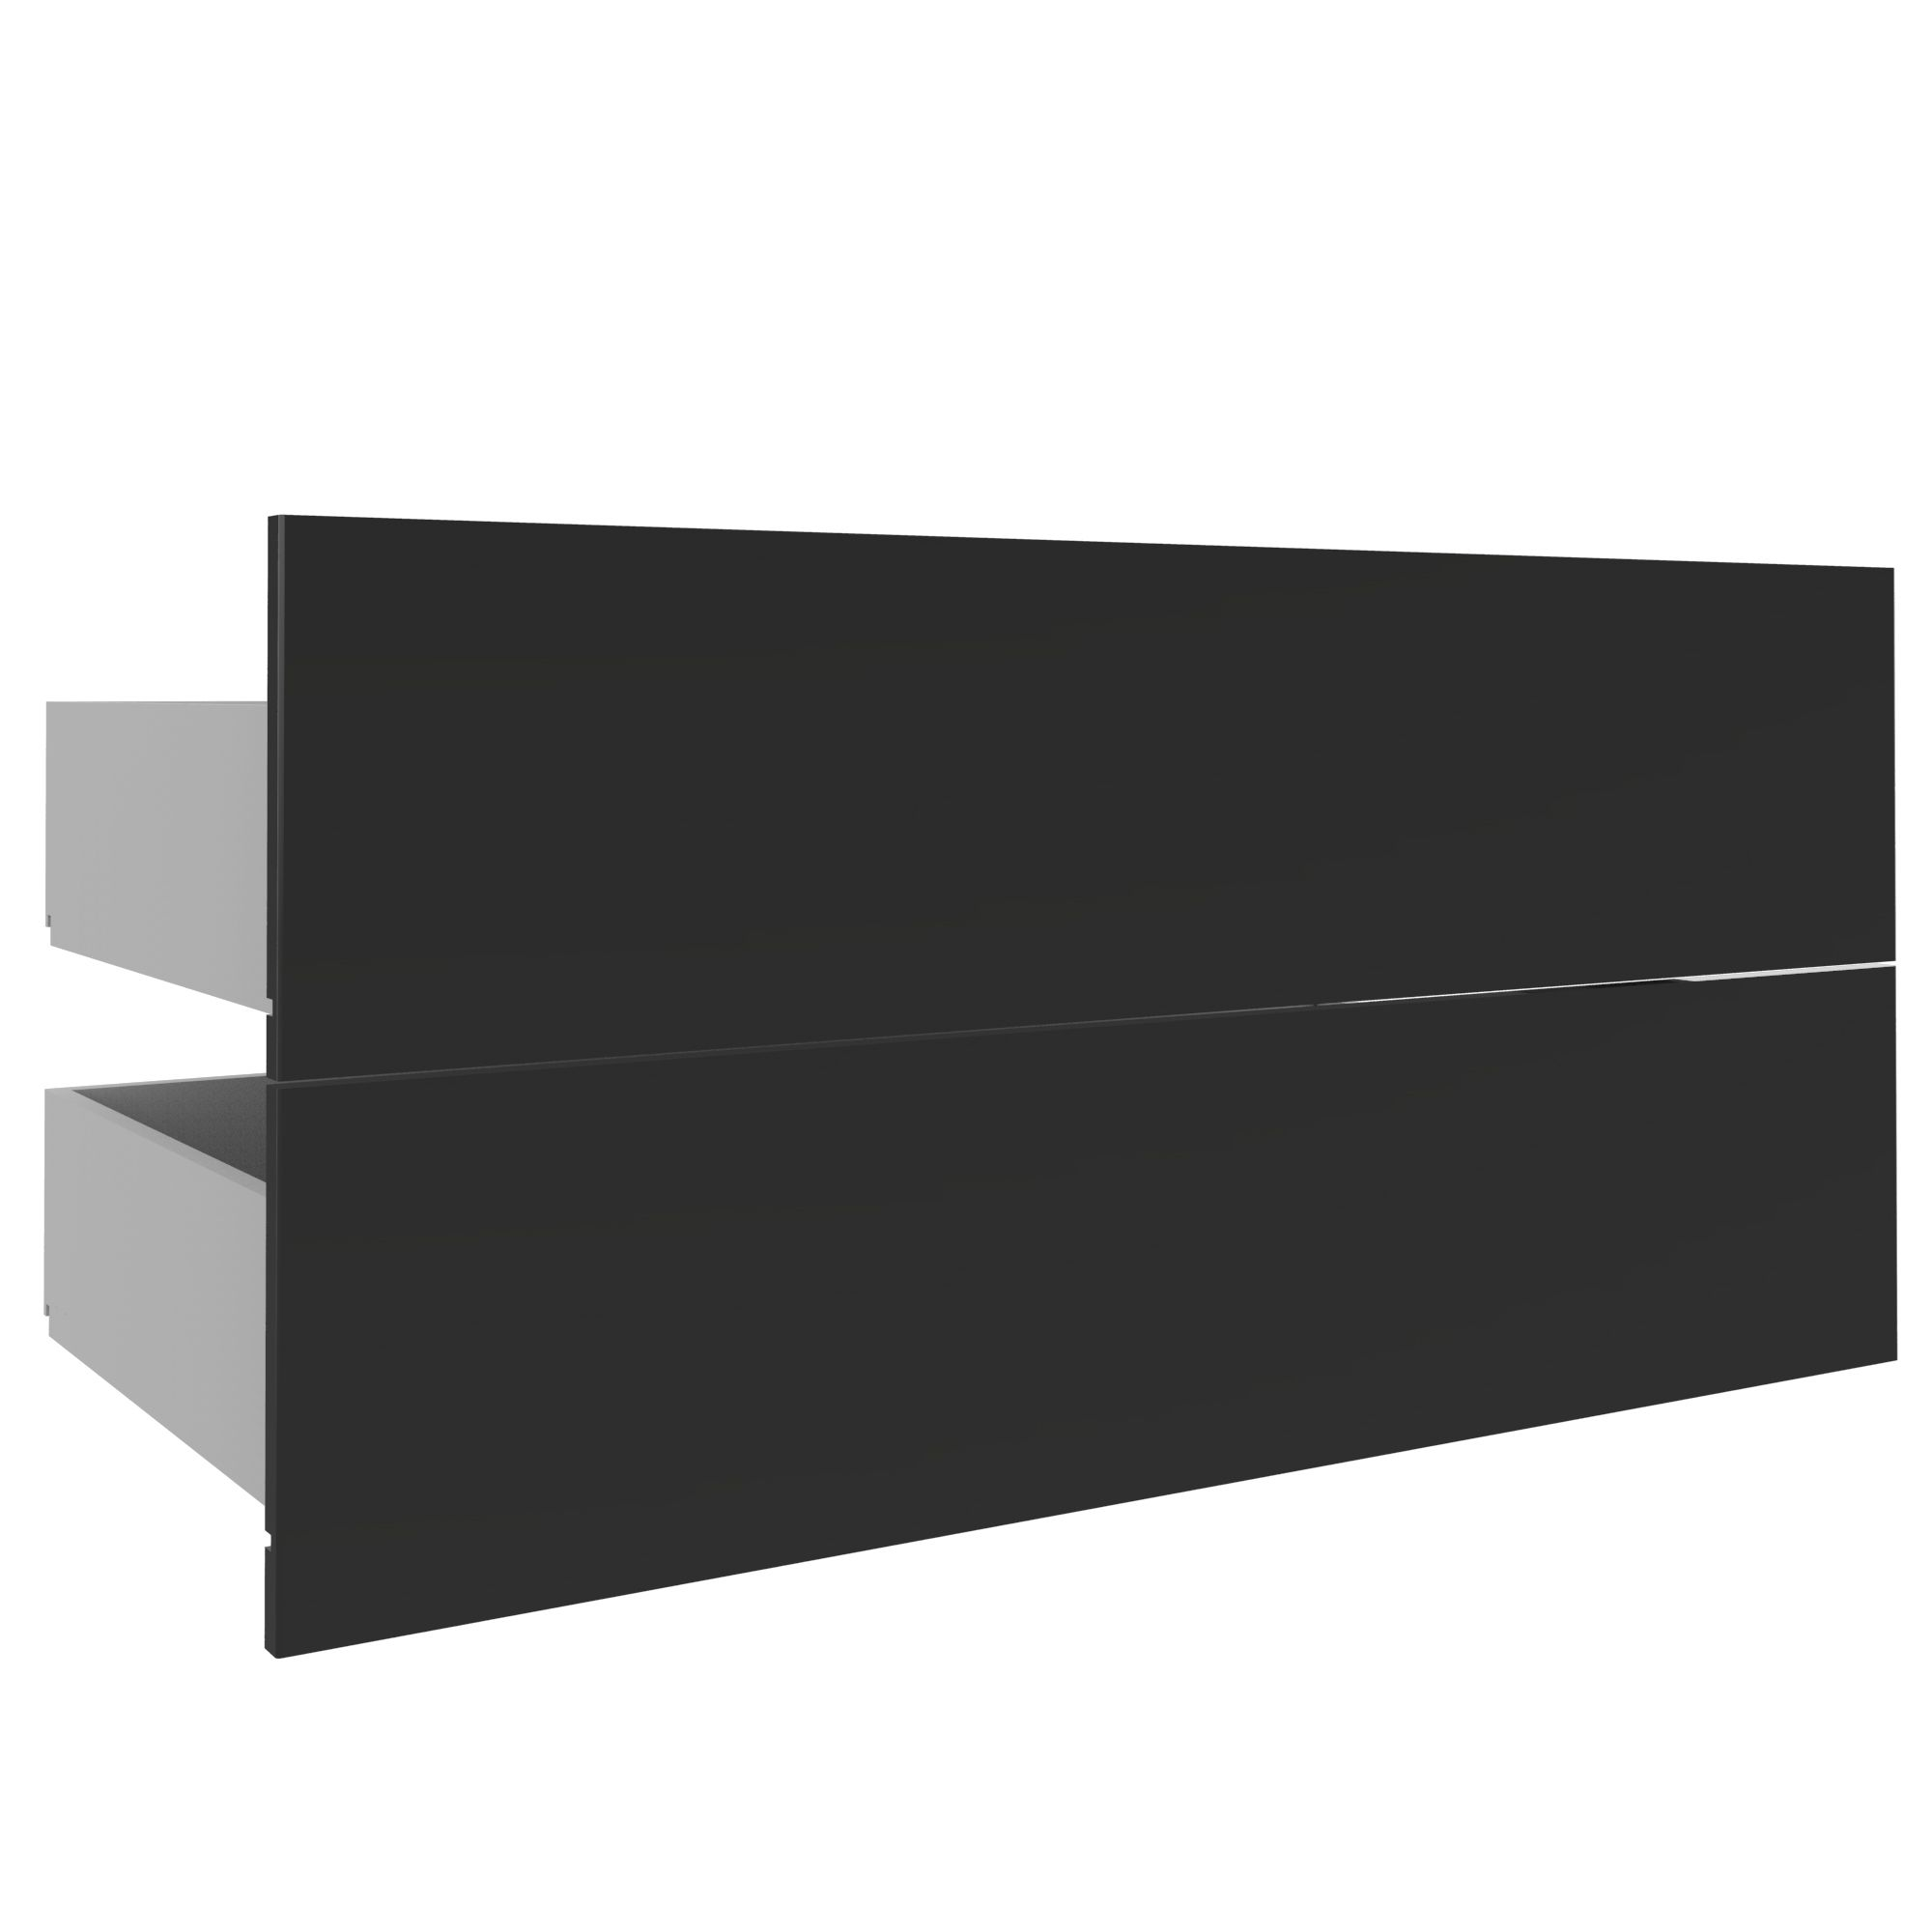 Darwin Modular Anthracite & Gloss External Drawers (h)237mm (w)1000mm (d)566mm